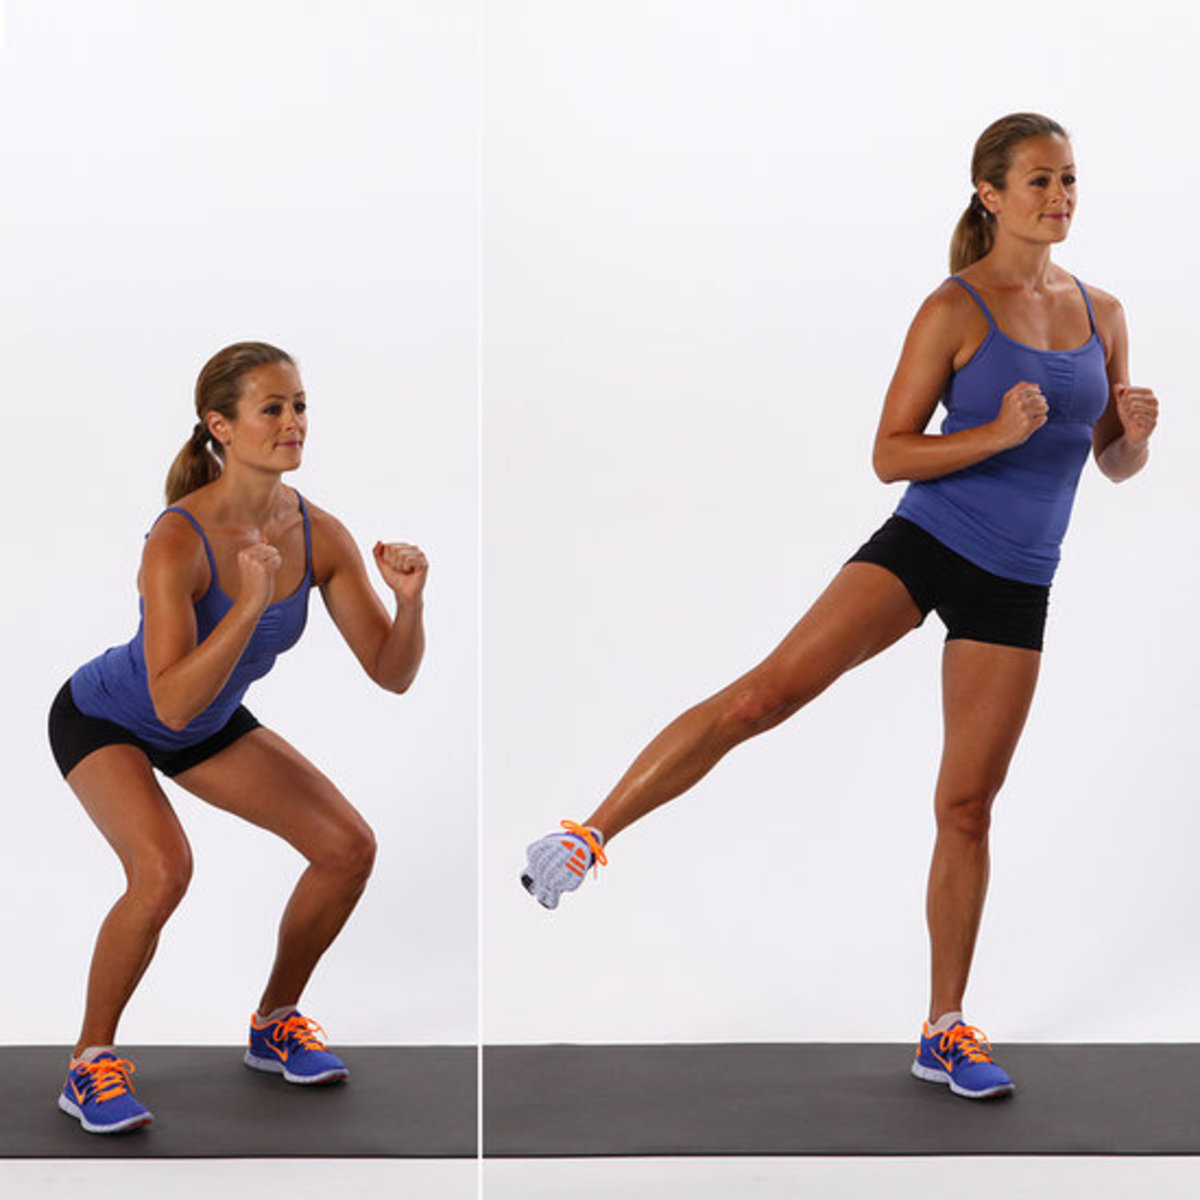 Pretty Girl Wearing Purple and Black Demonstrating the Movements of the Squat and the Leg Lift in Split Screen -